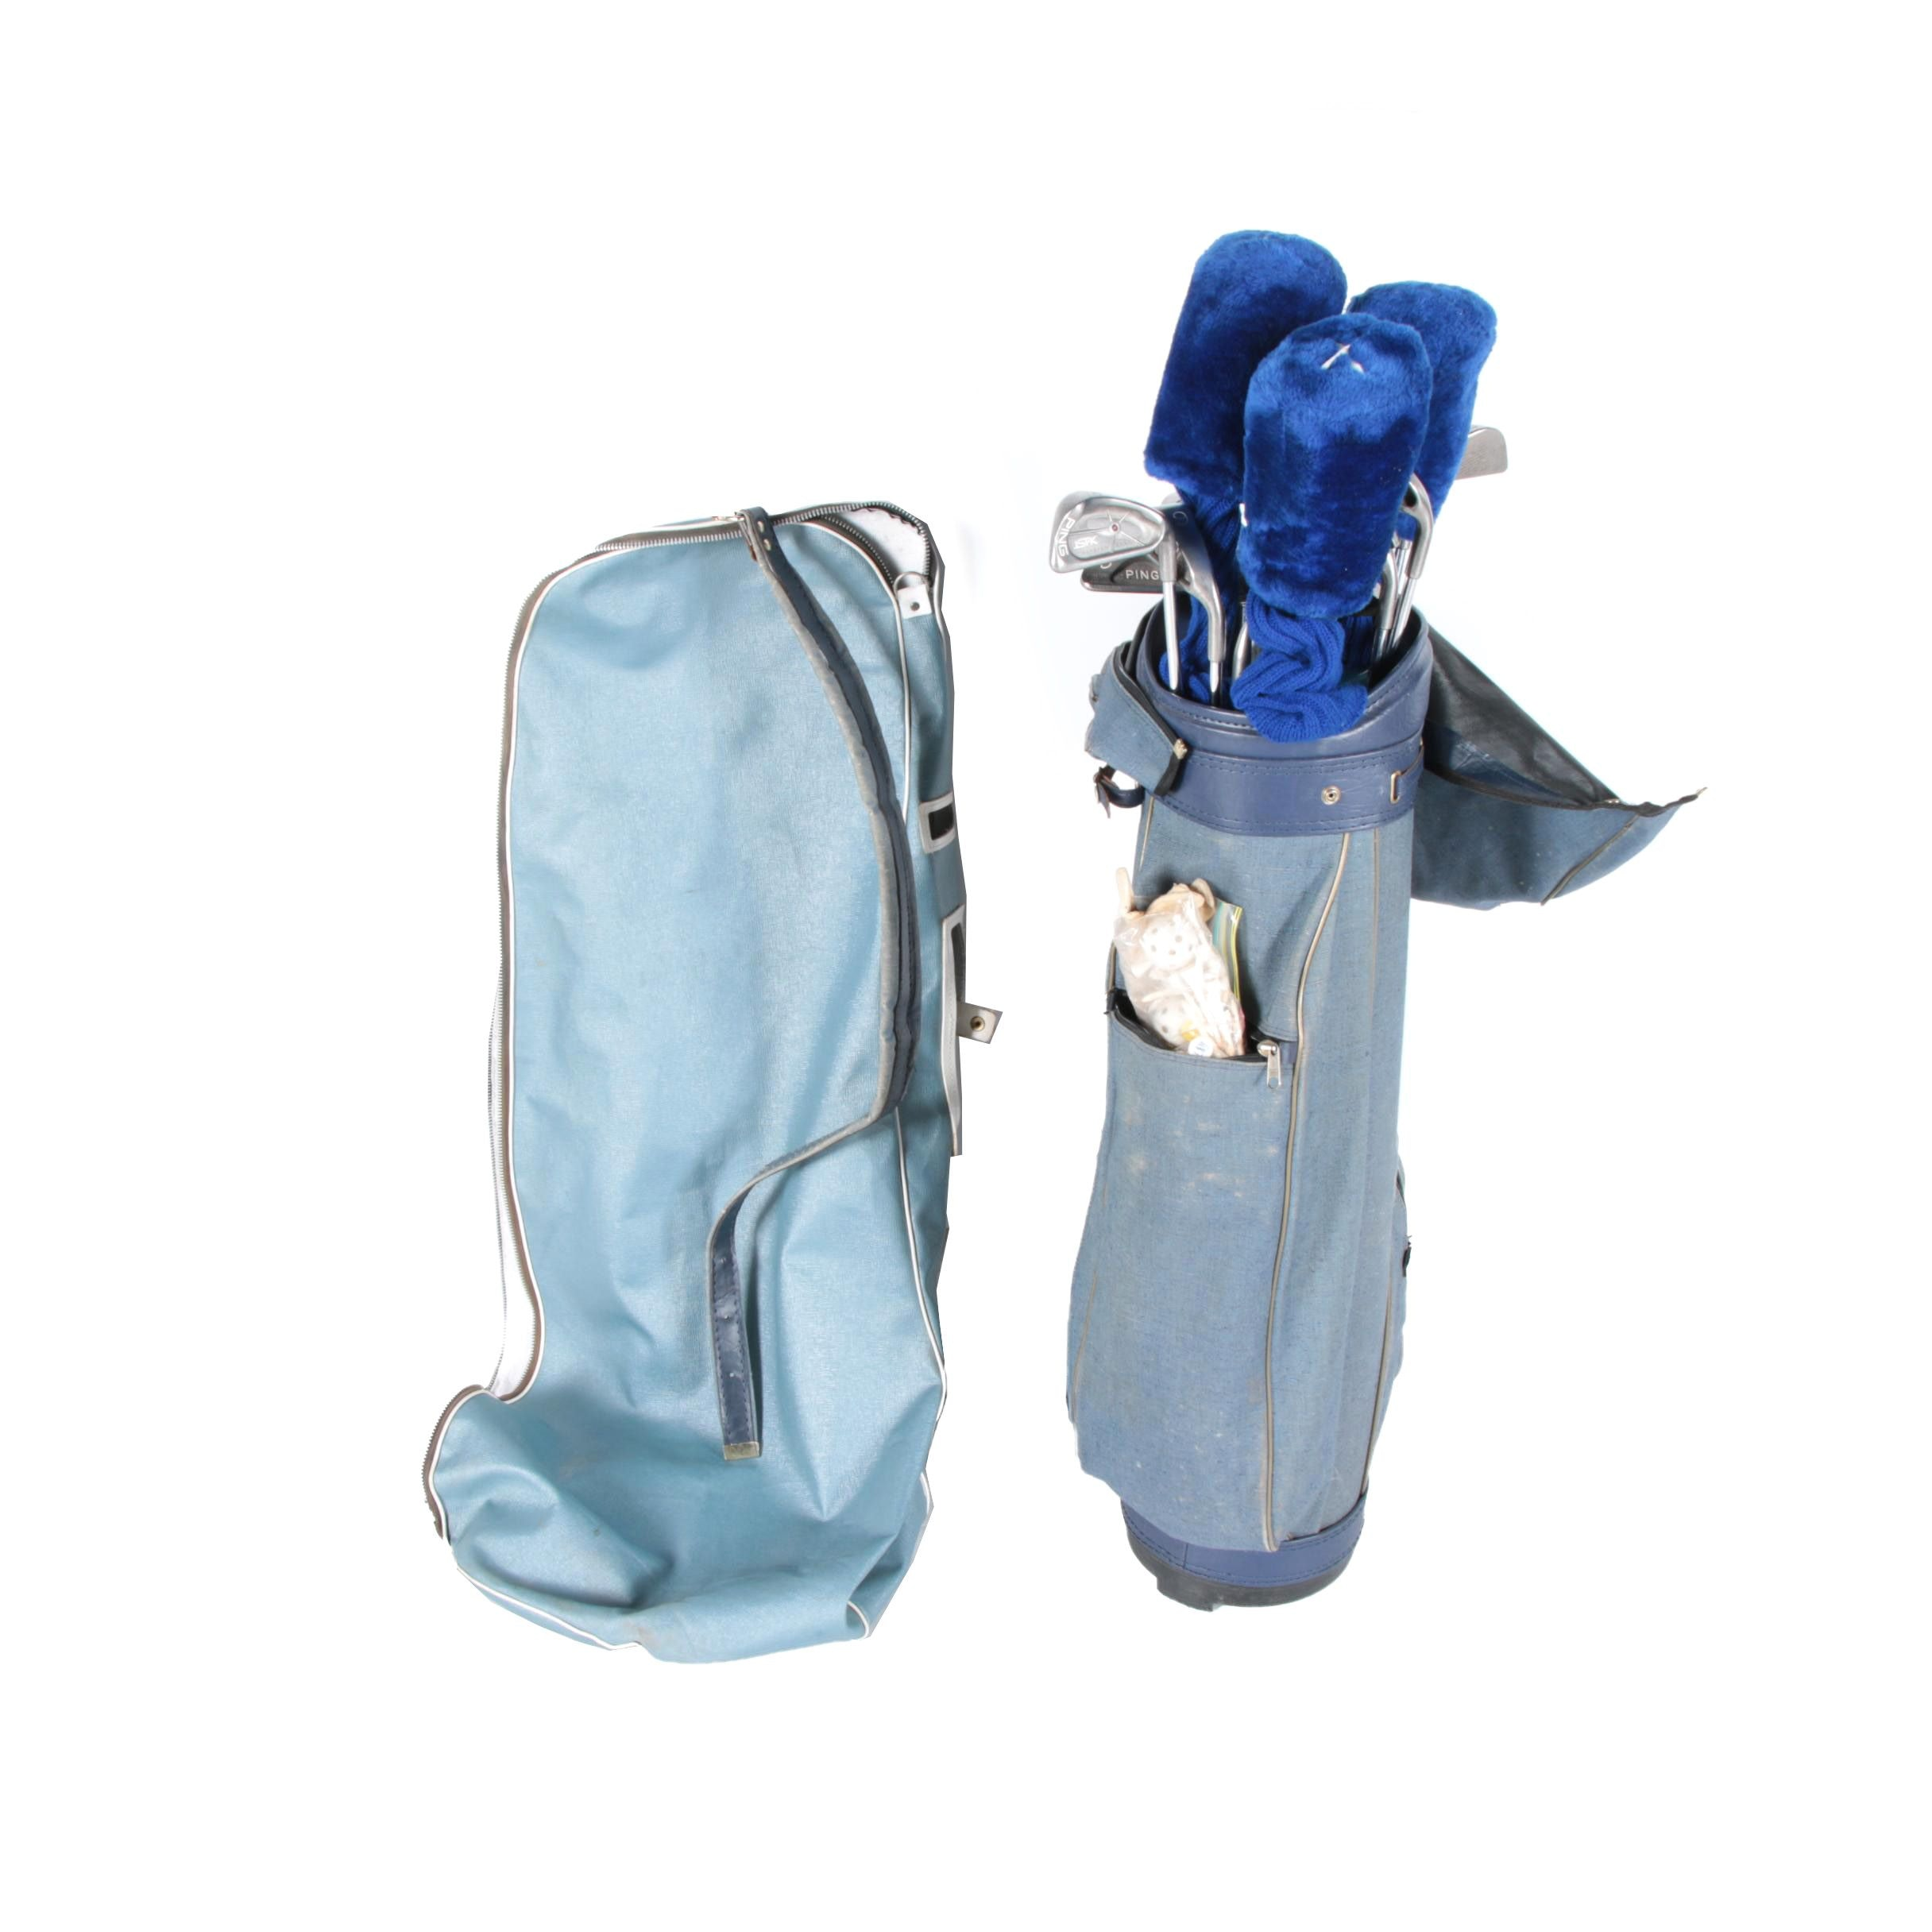 Promaster Golf Bag with Clubs and Accessories